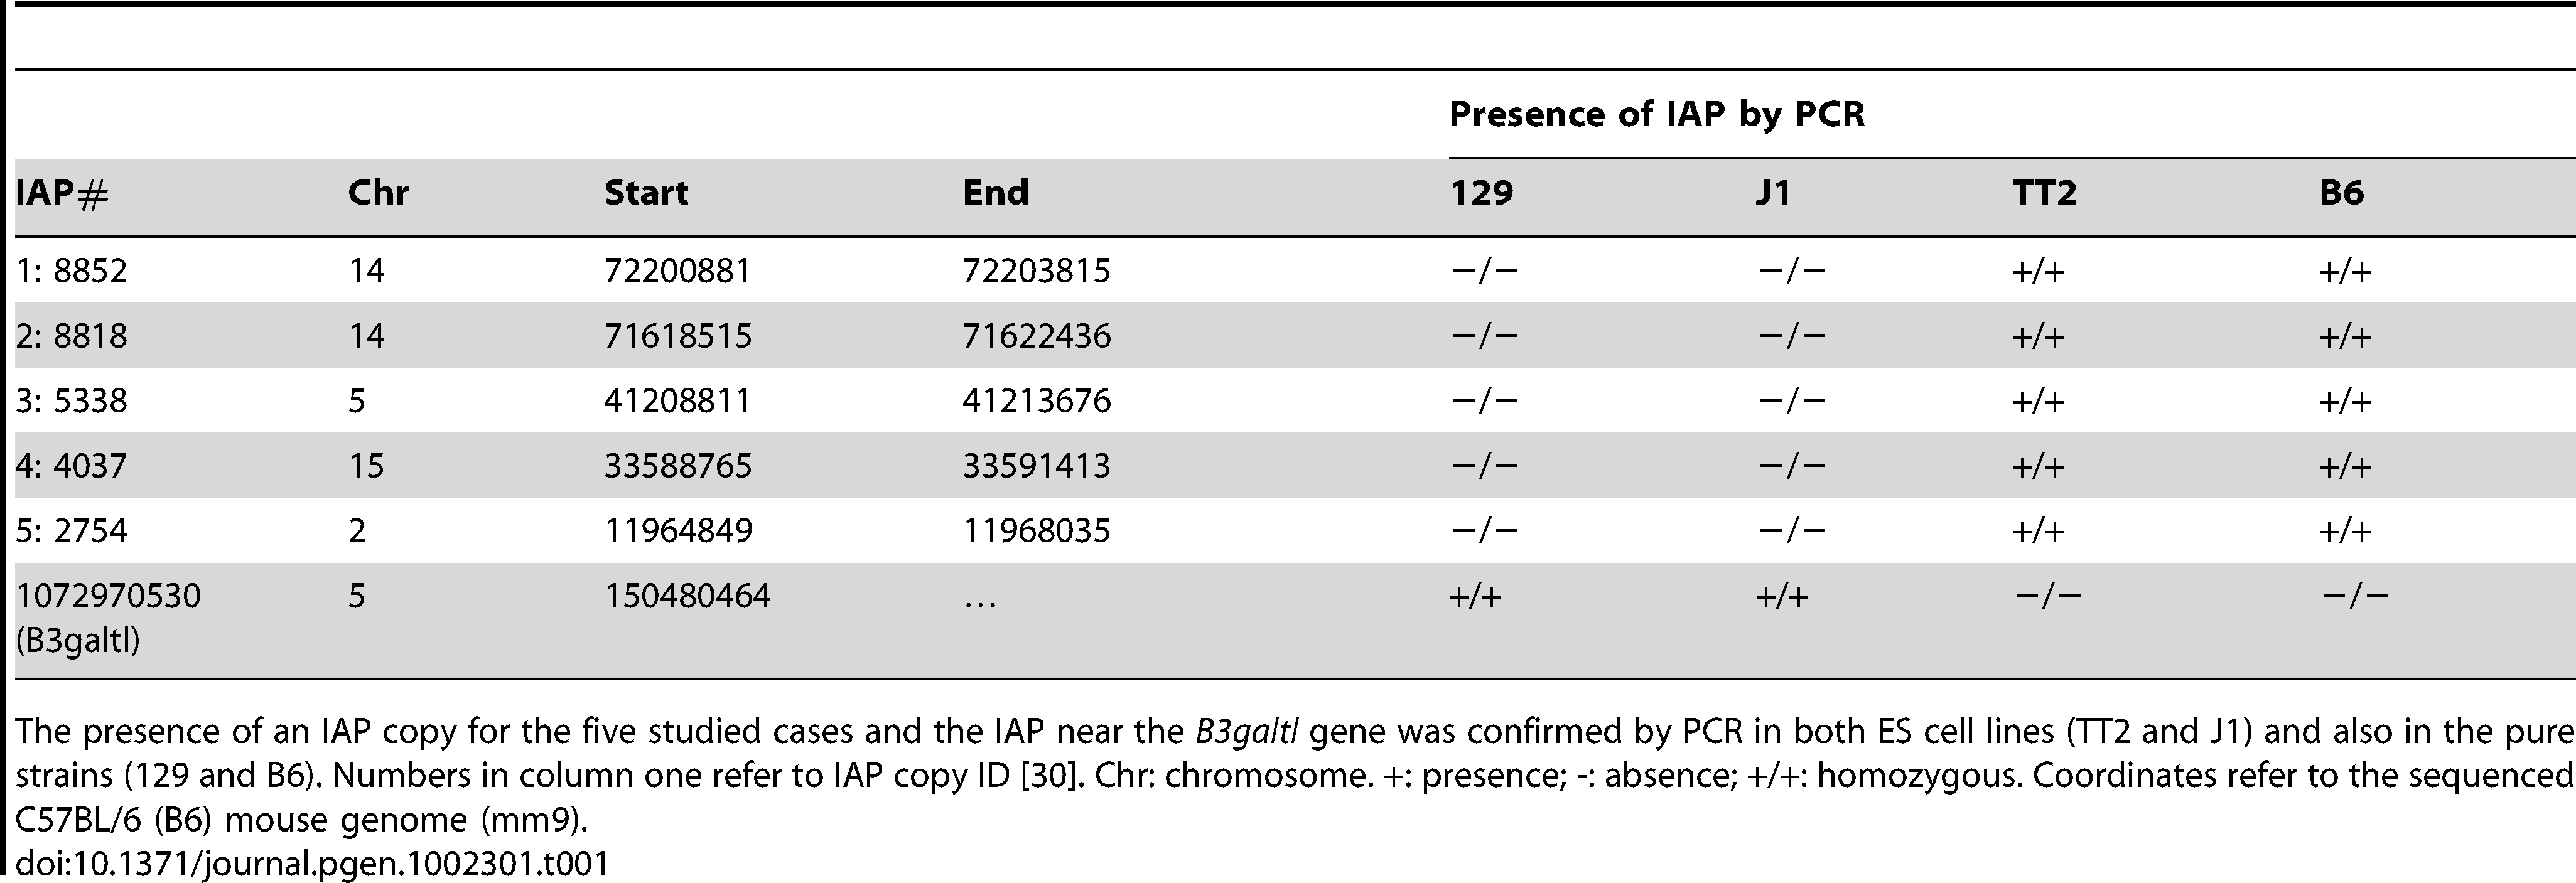 Confirmation of IAP presence.